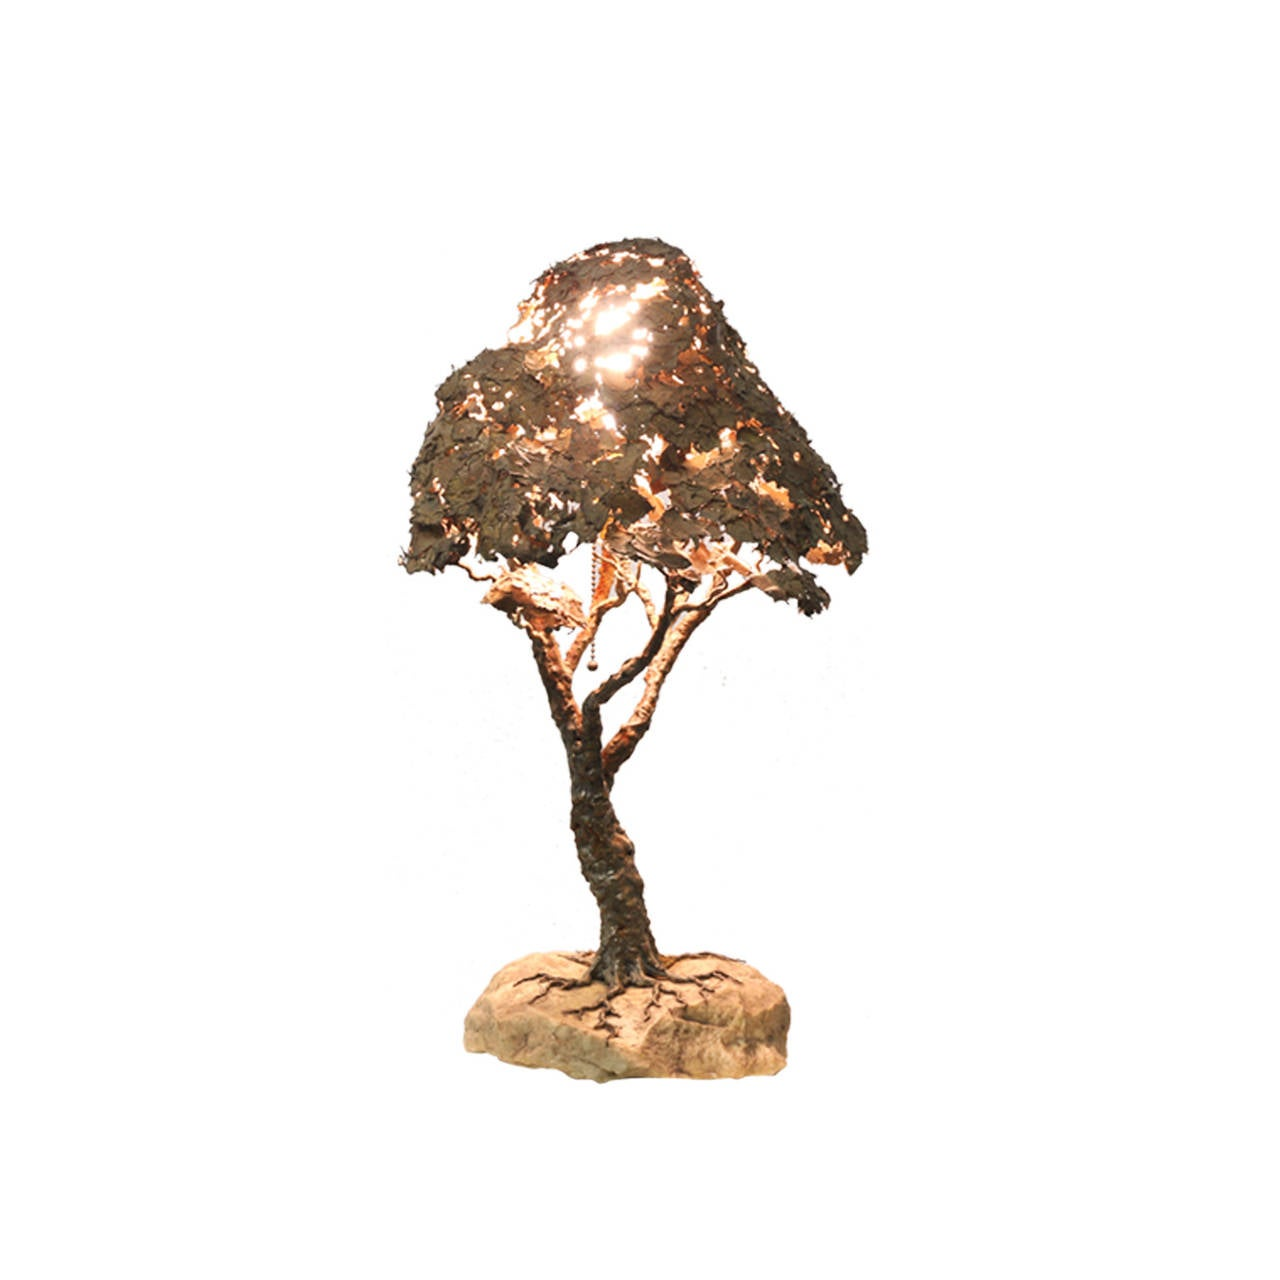 Vintage Bronze Tree Sculpture Table Lamp For Sale At 1stdibs